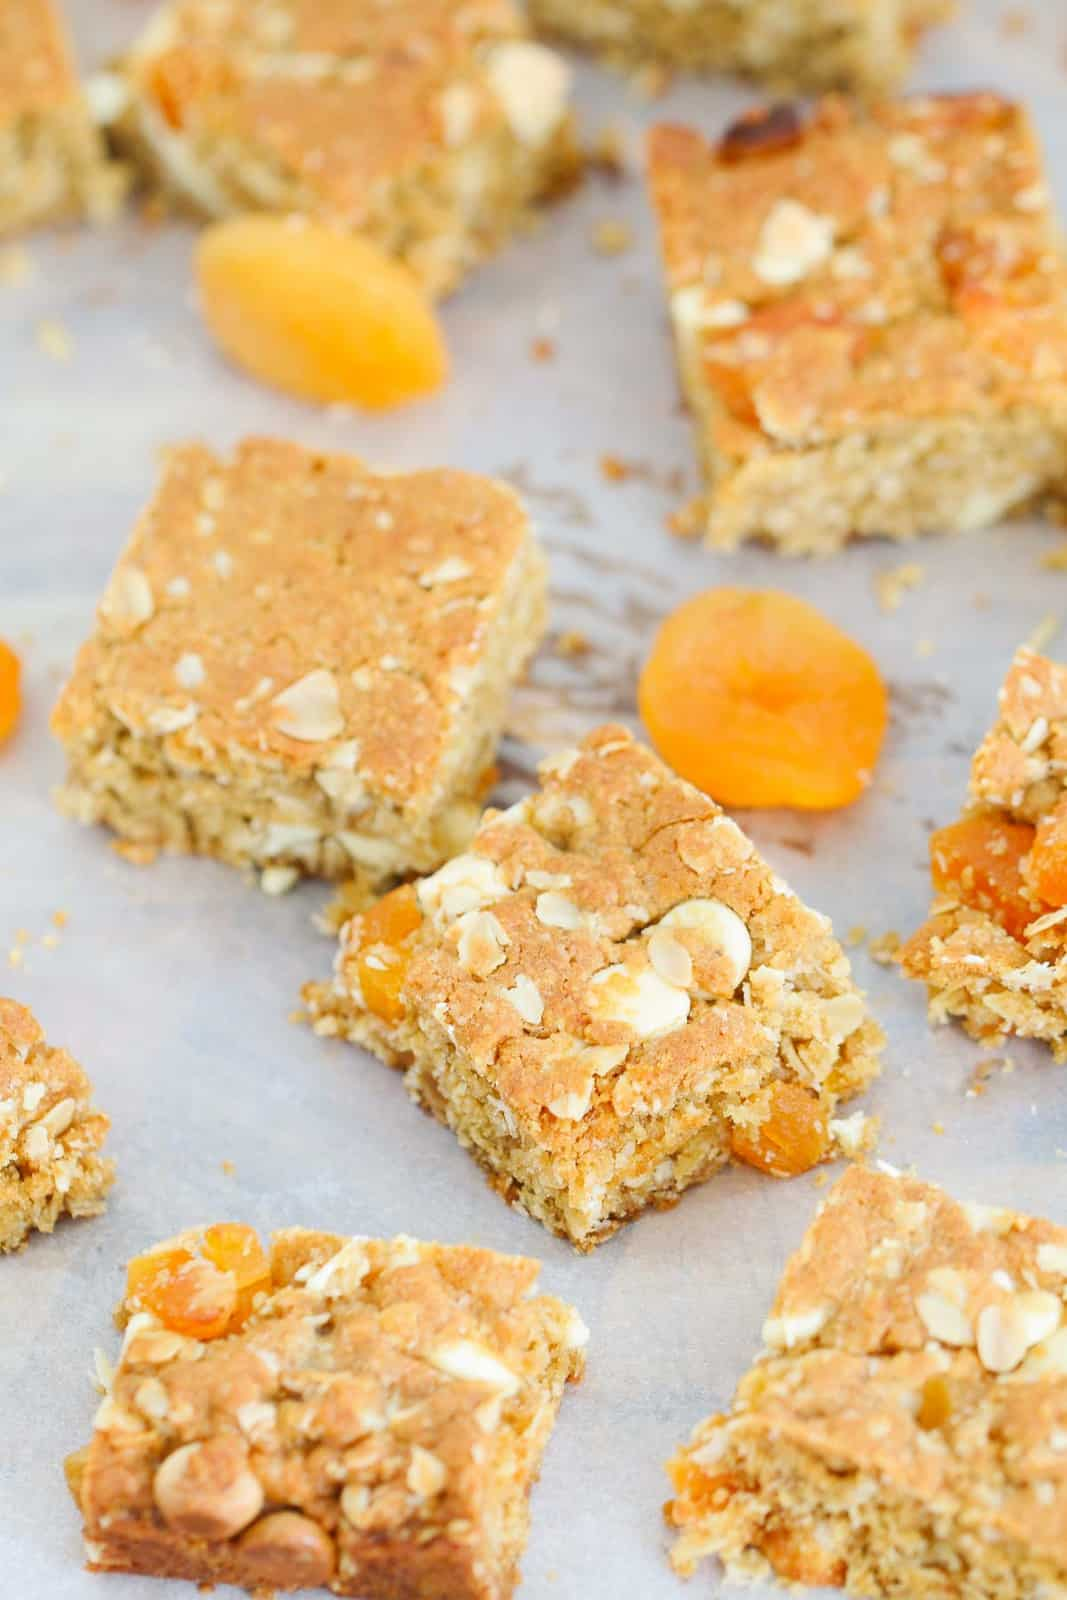 Apricot oat slice cut into squares with some dried apricots nearby